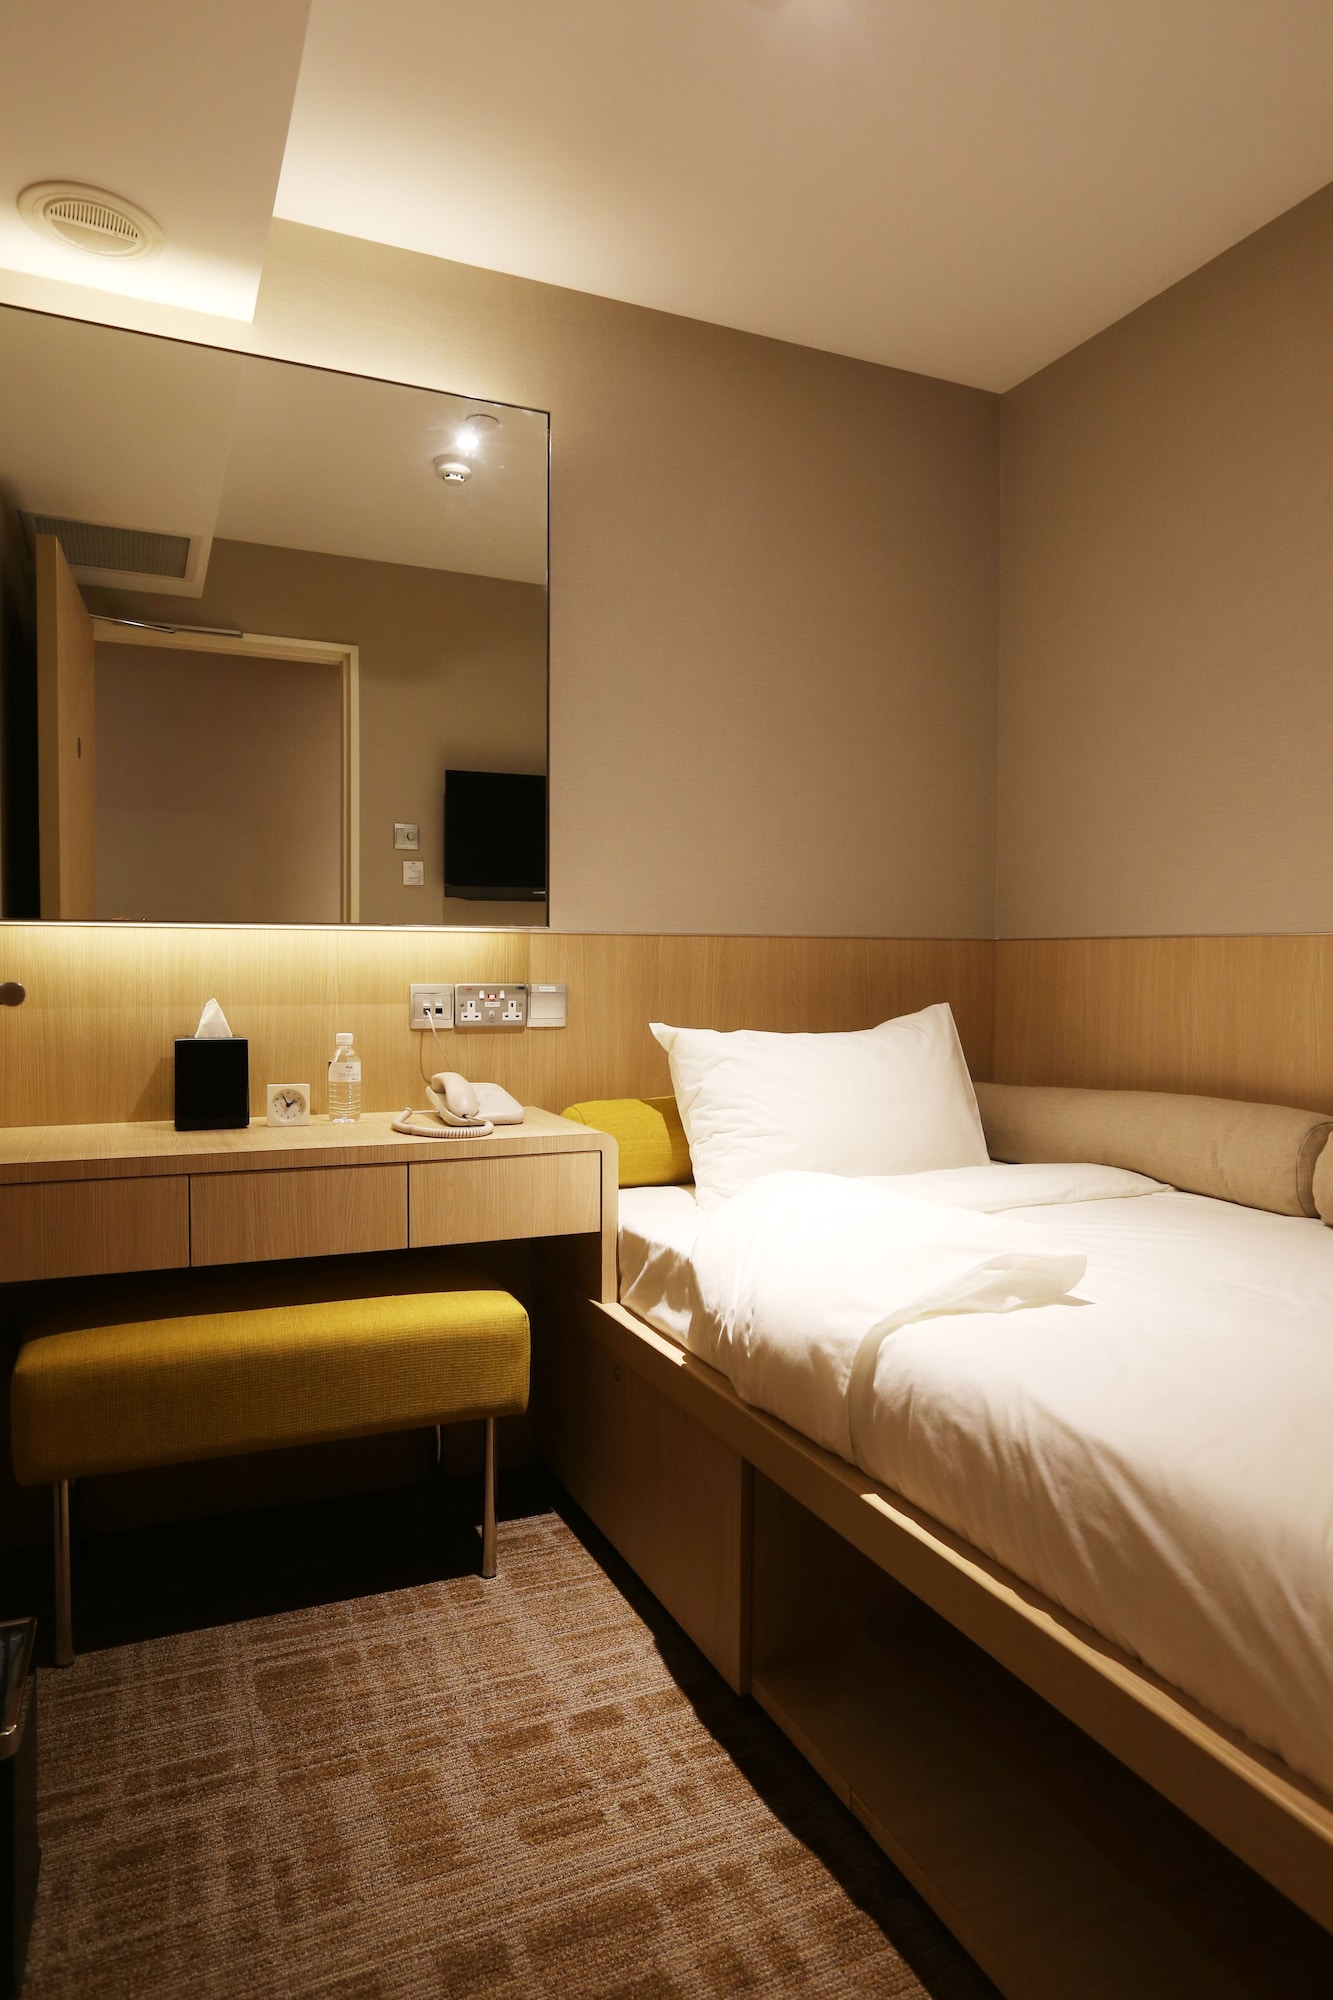 The Haven by JetQuay, Changi